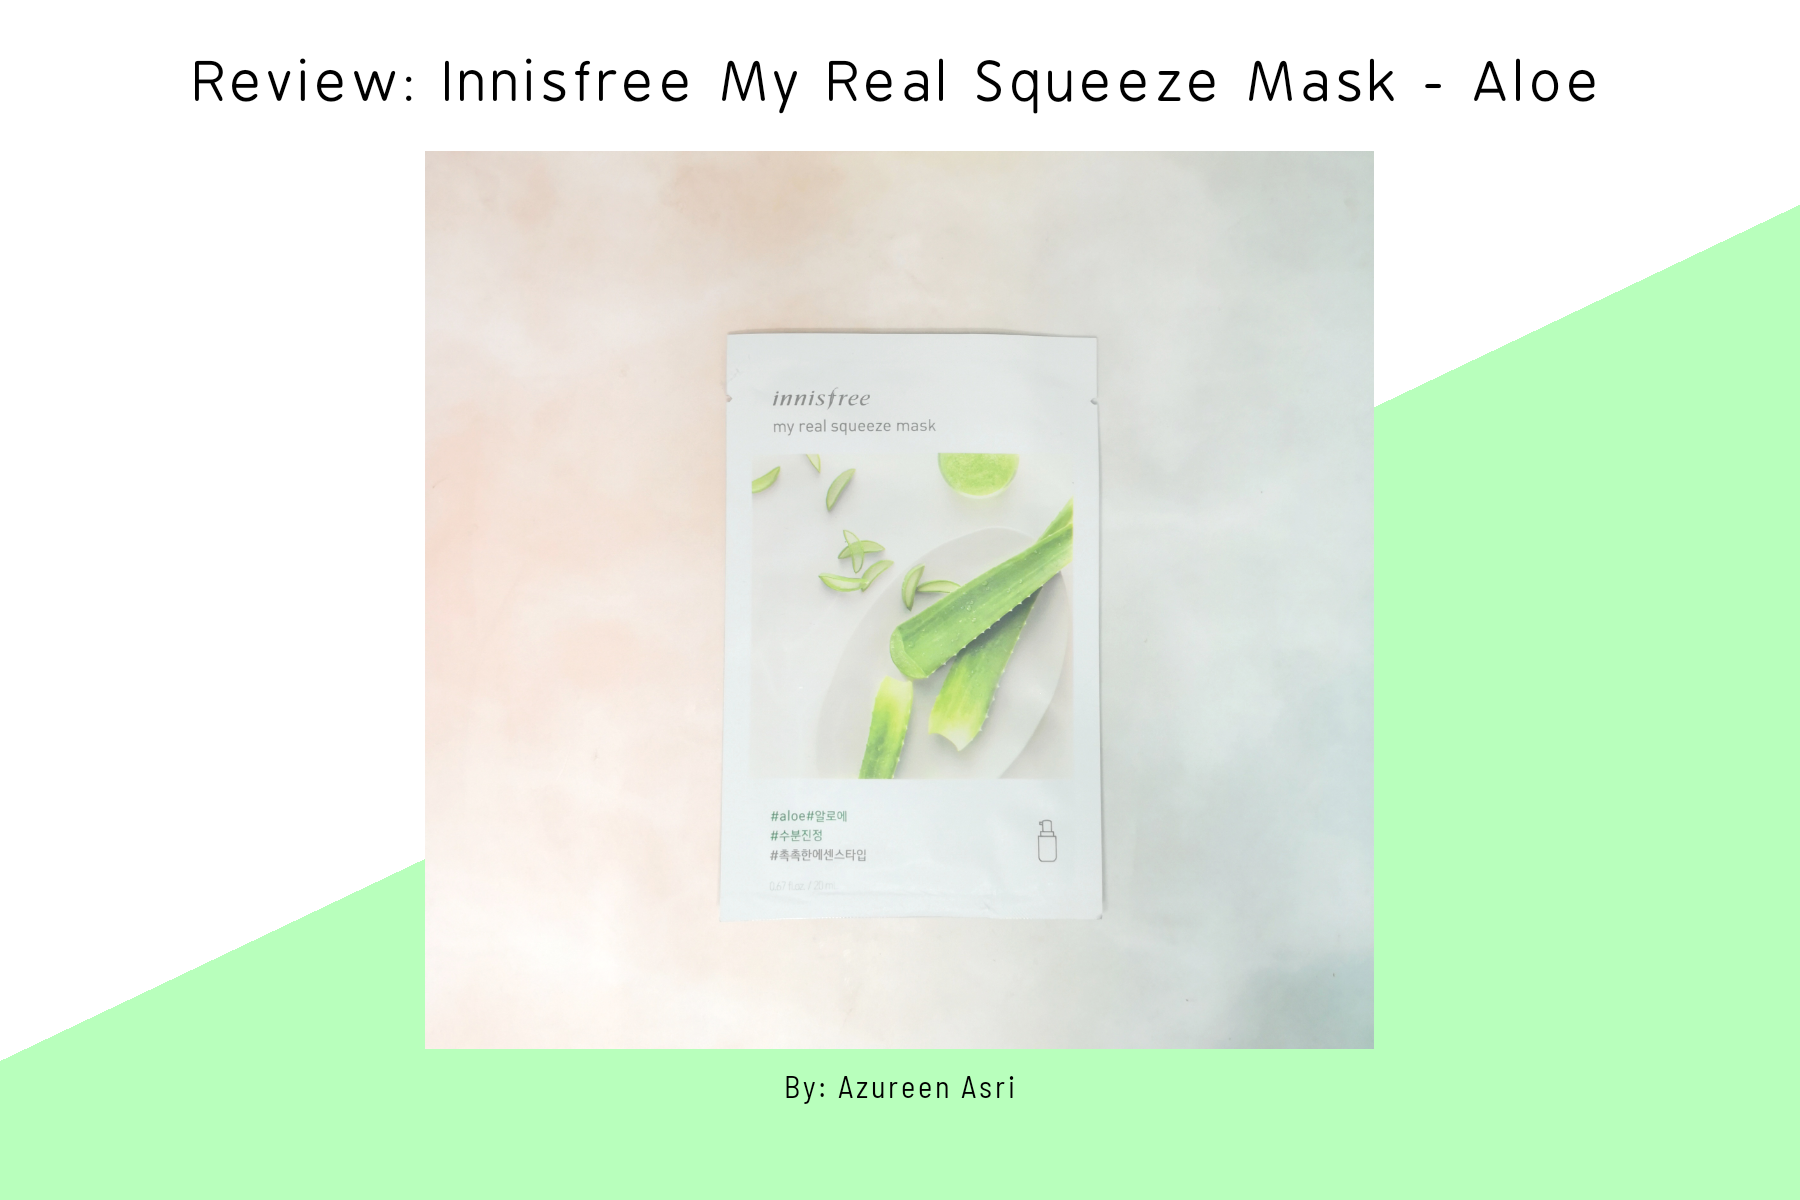 REVIEW | Innisfree My Real Squeeze Mask #Aloe